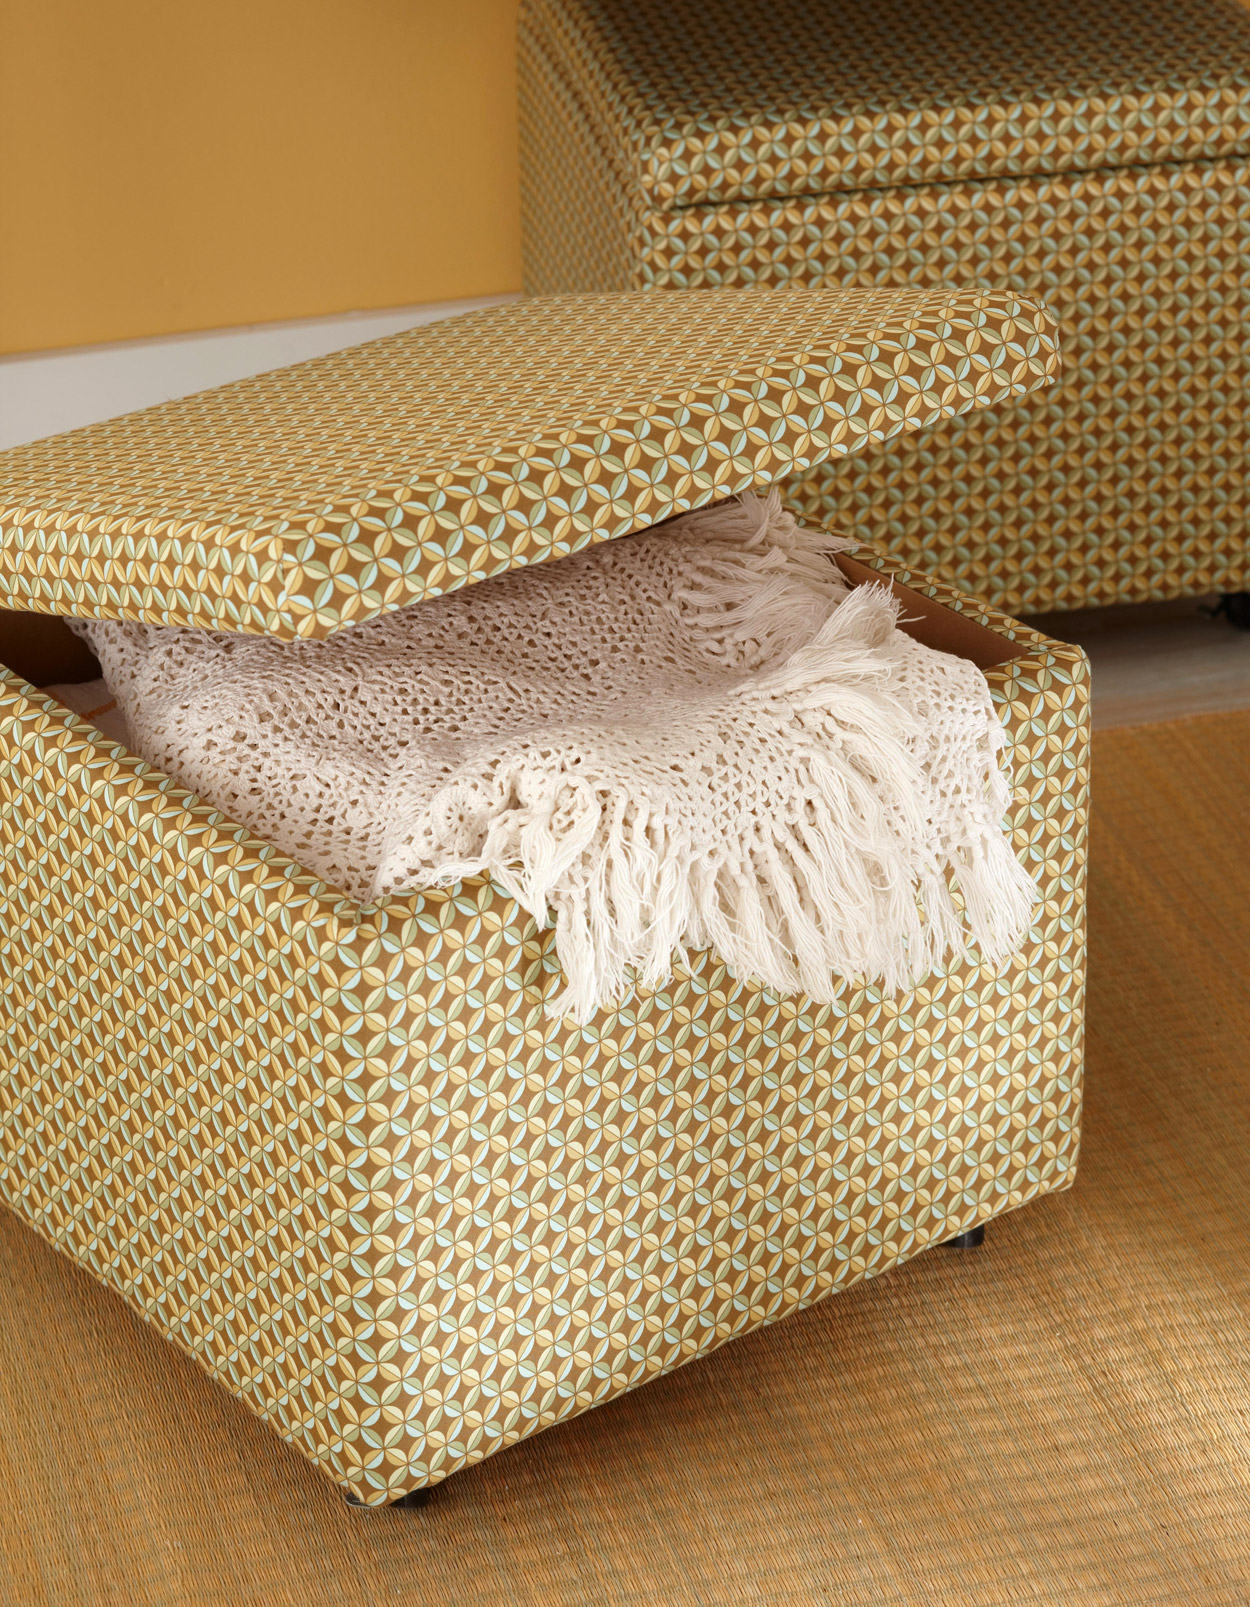 patterned fabric storage box with white blanket